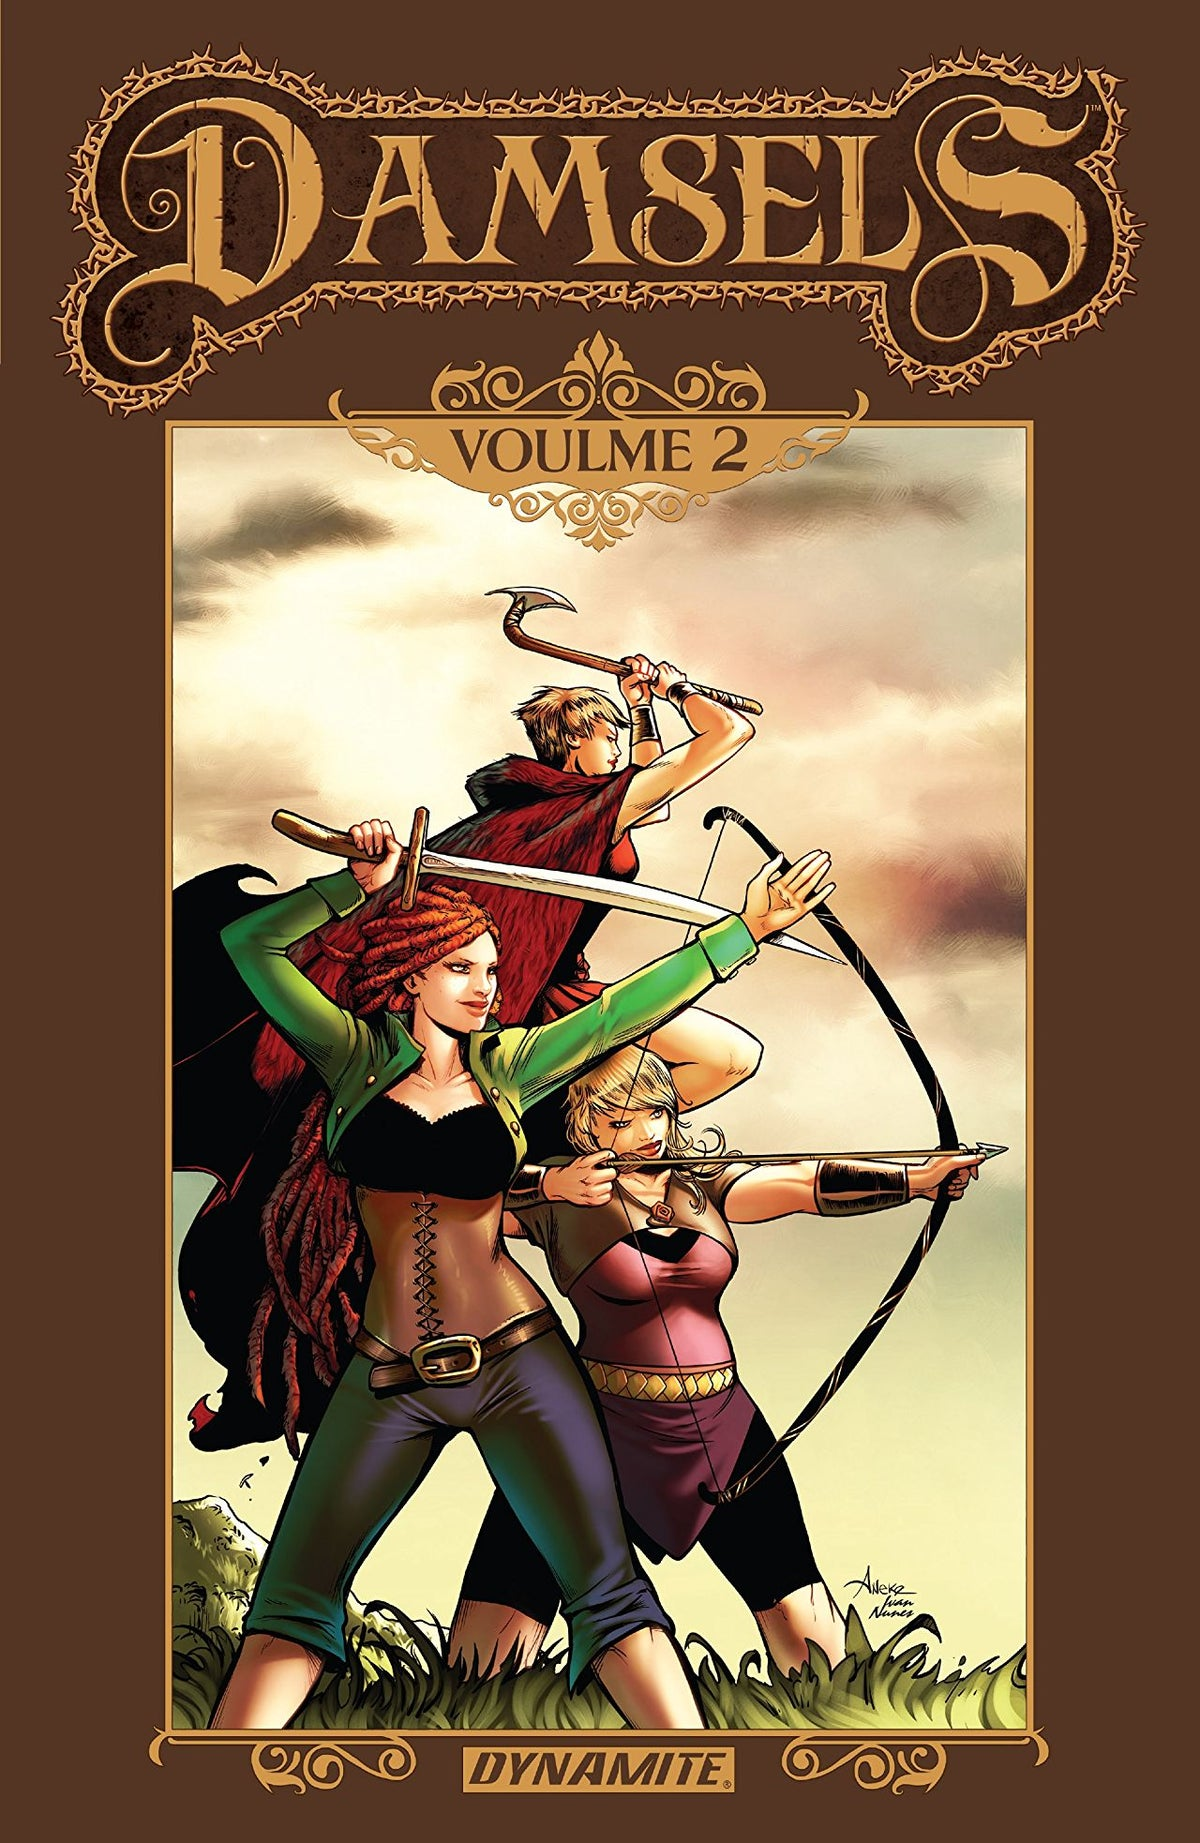 Image of Damsels Vol 2